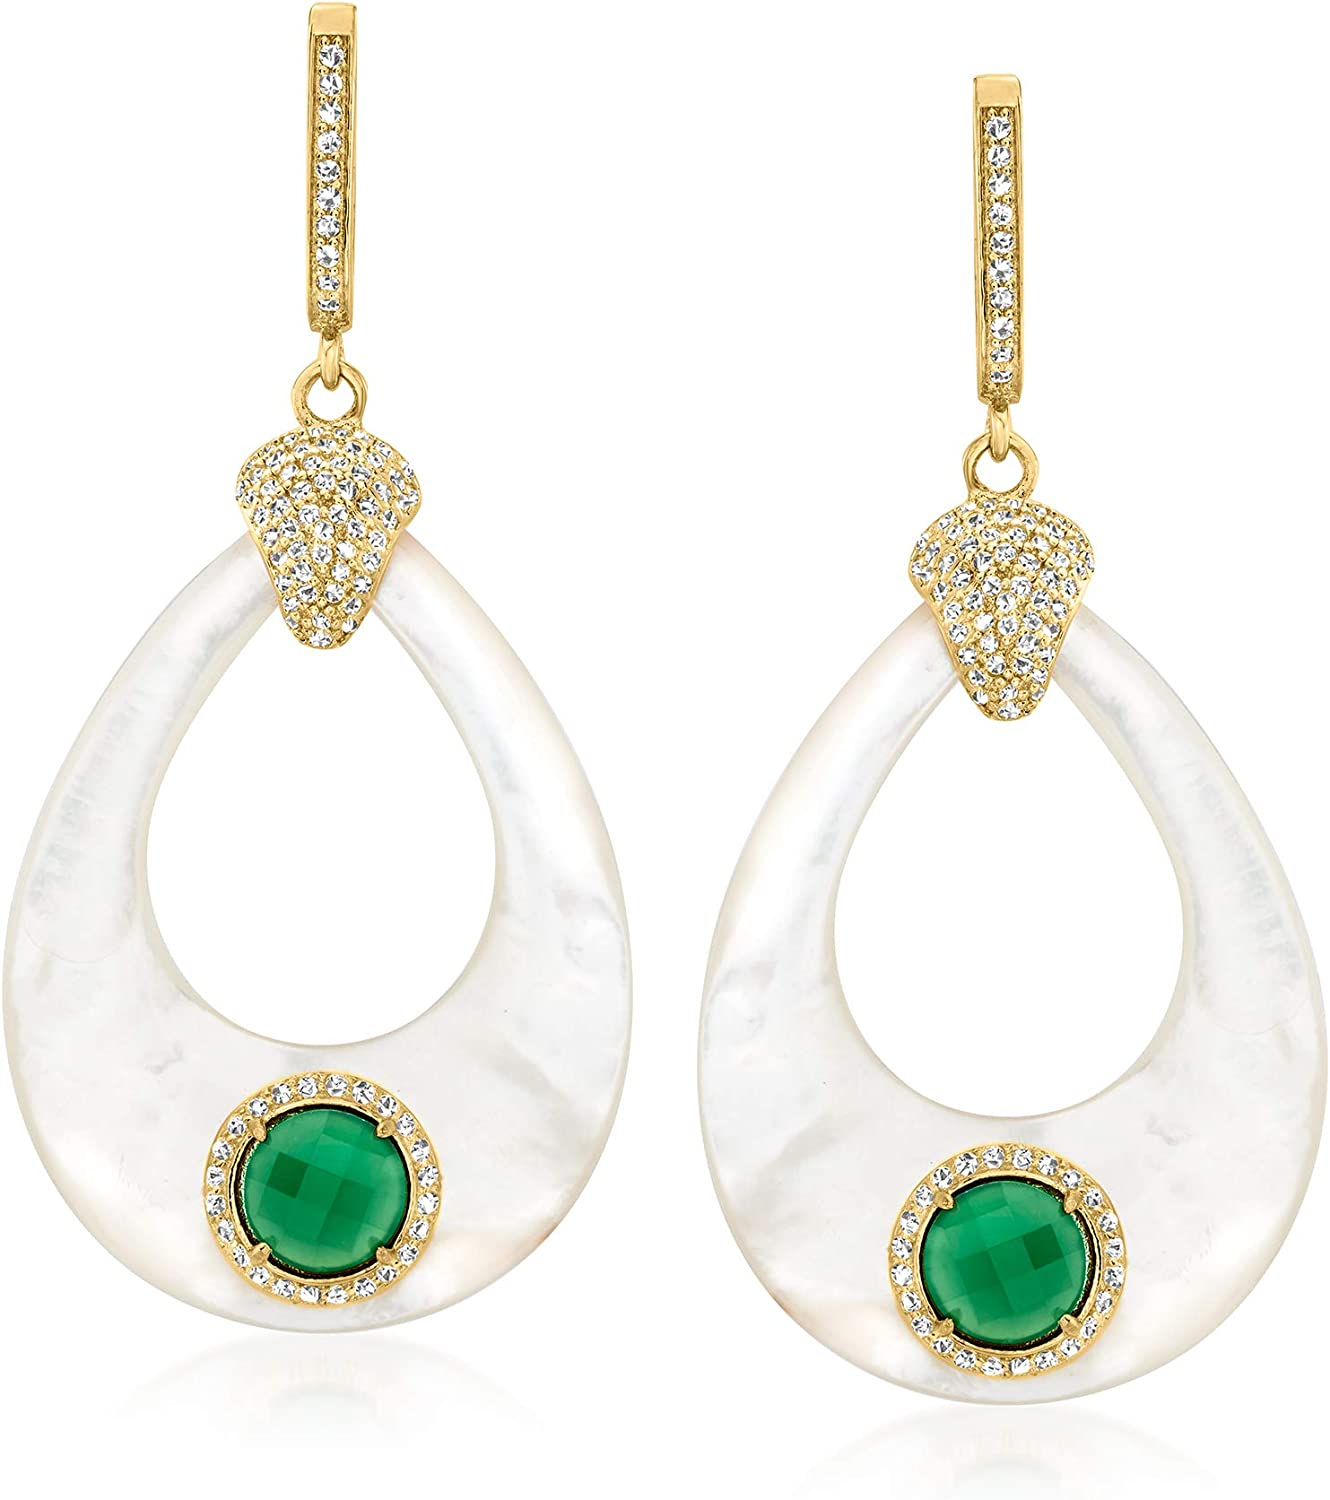 Ross-Simons Gorgeous Mother-Of-Pearl Houston Mall Green Agate 1.80 To White ct. t.w.